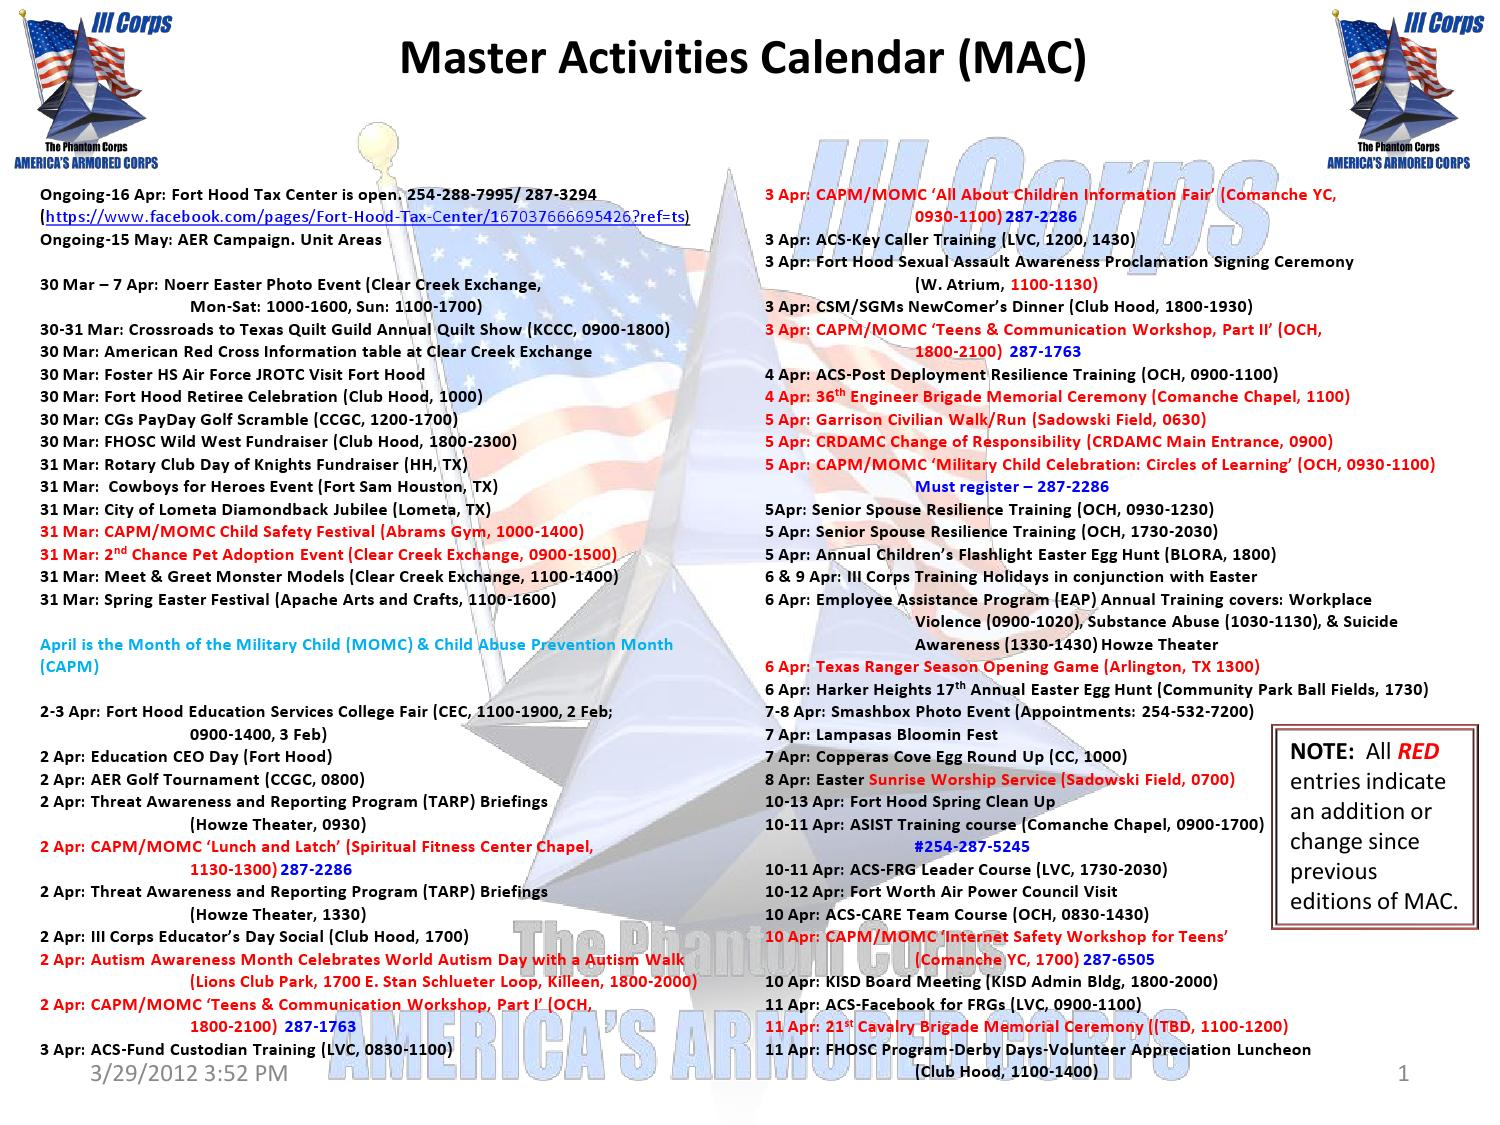 Fort Hood And Iii Corps Master Events Calendar March 2012